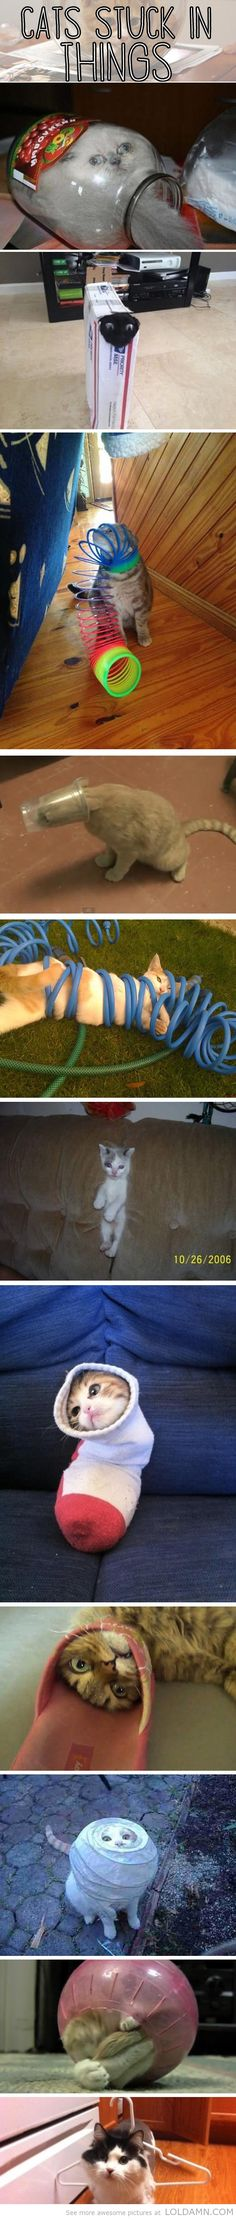 Cats stuck in things…I'm not normally one for online cat pictures but HAHAH!!